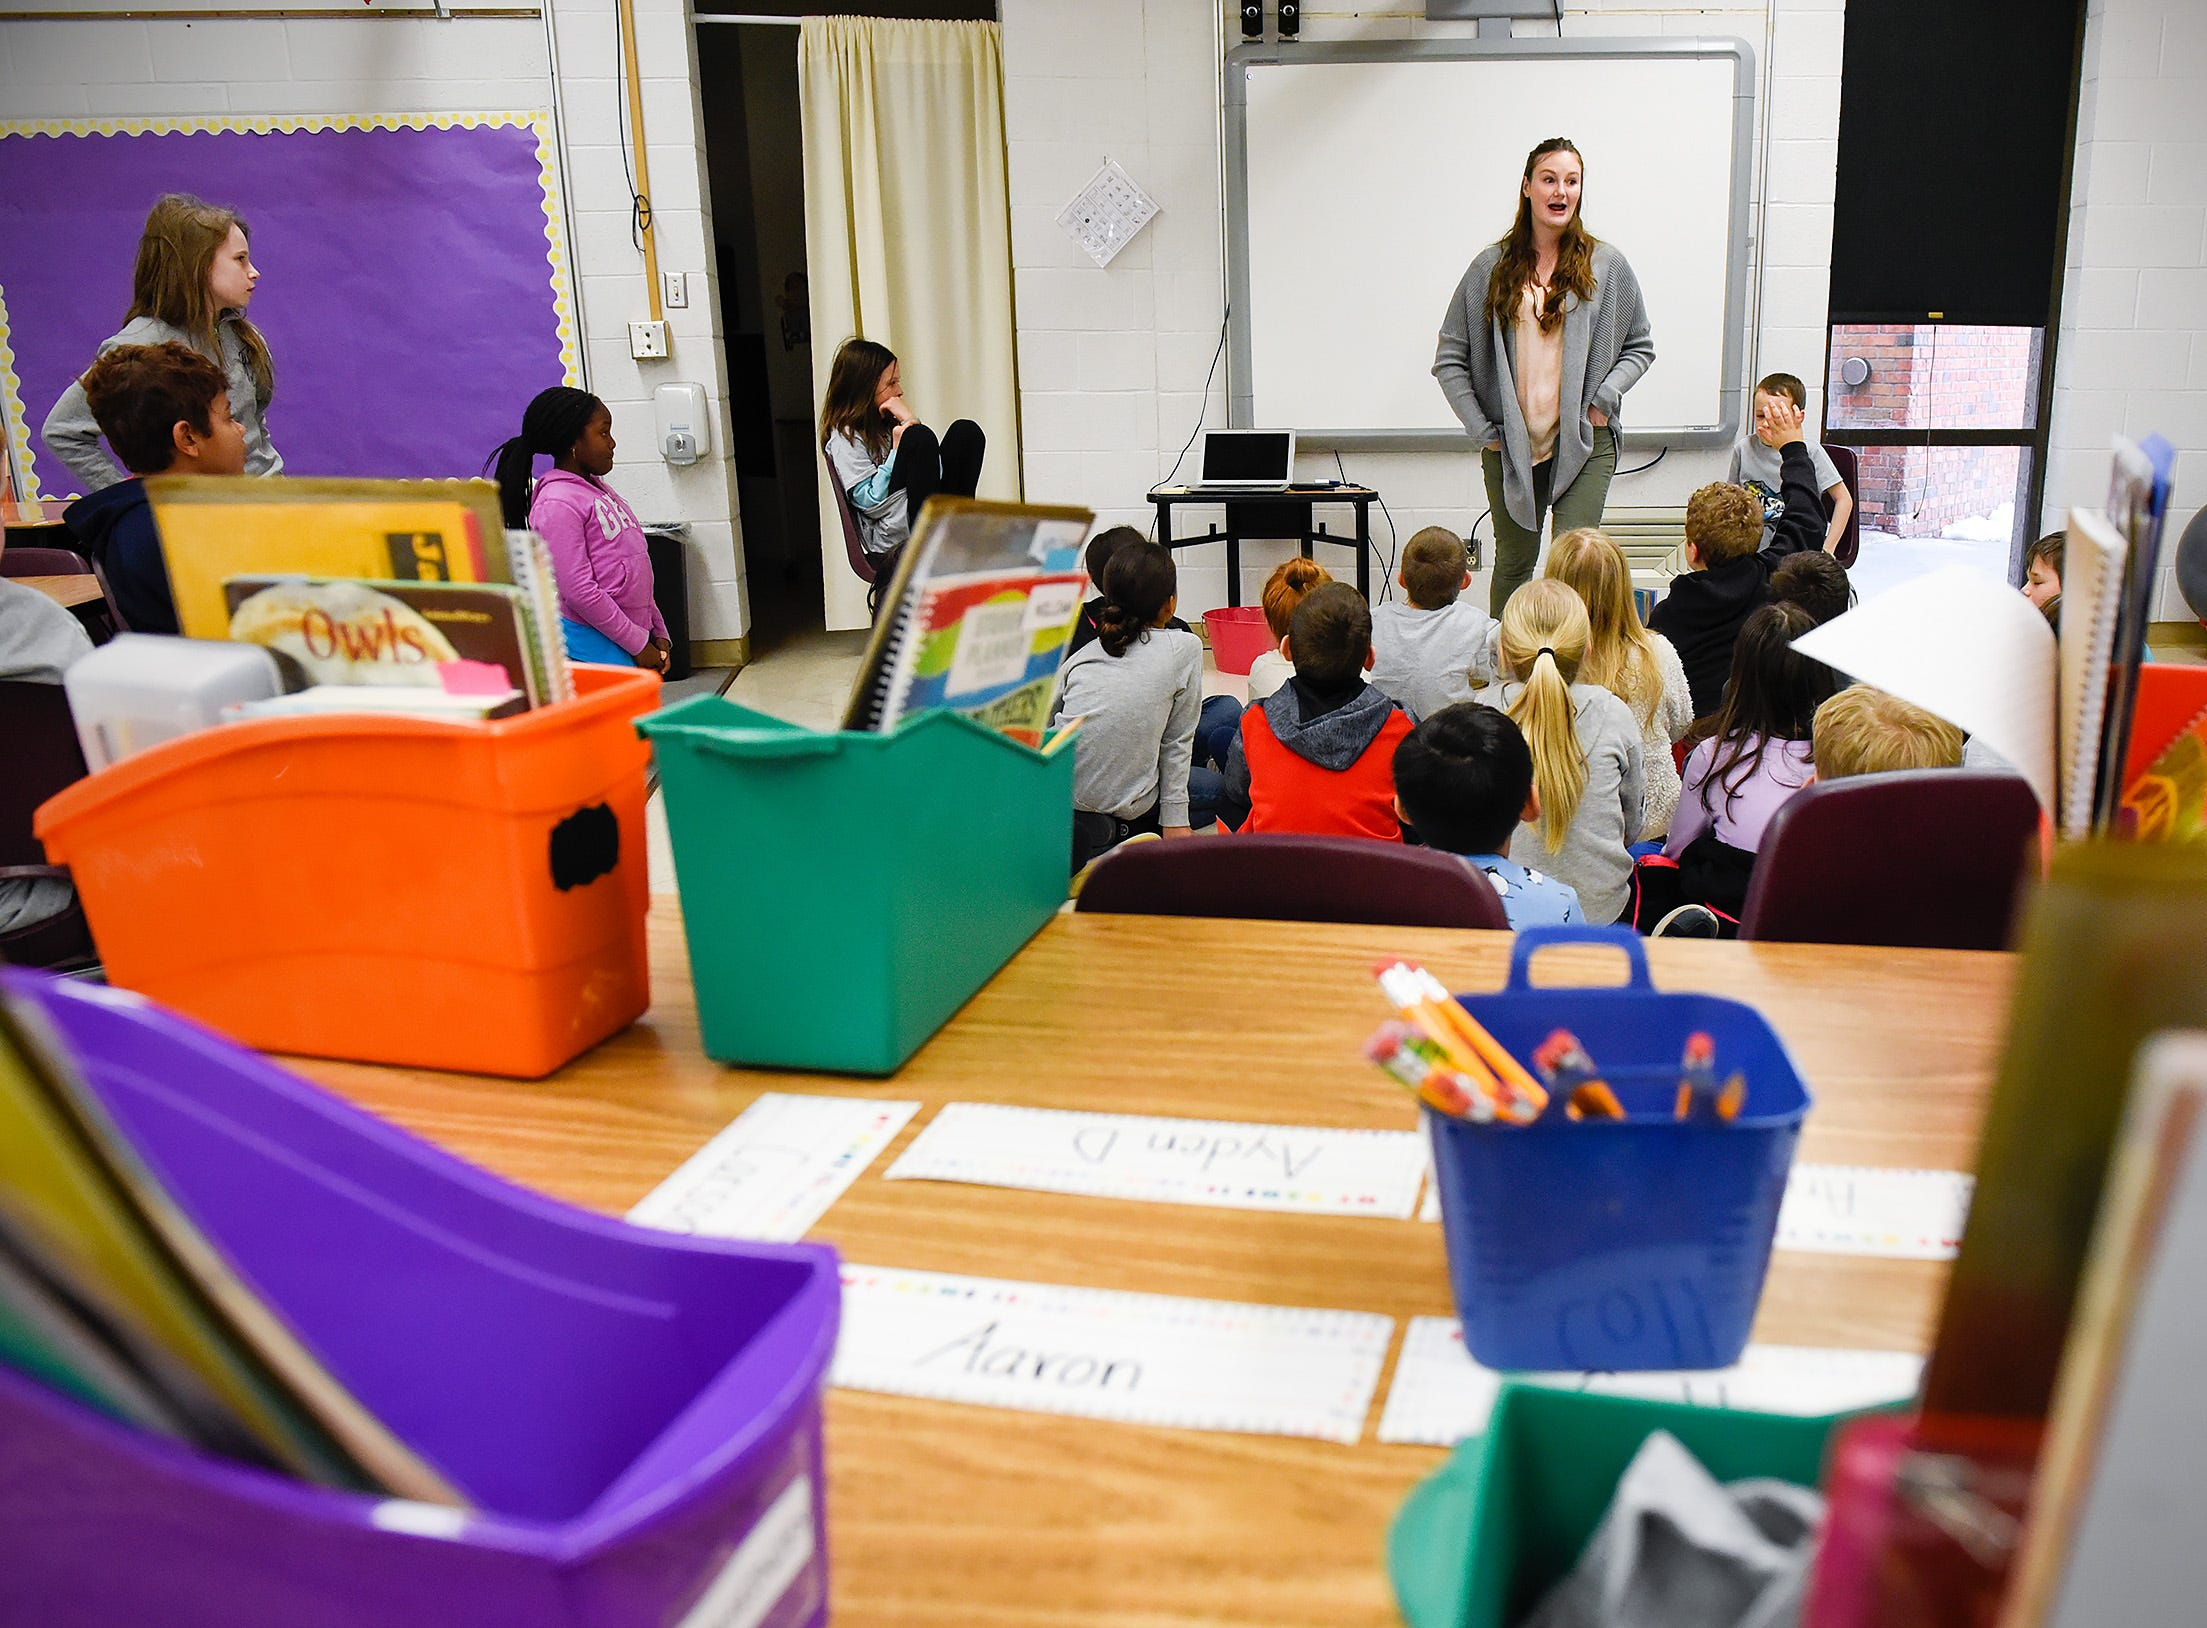 Teacher Emily Young talks with her students in a new classroom area Tuesday, Jan. 15, after a fire damaged classrooms at Pleasantview Elementary School in Sauk Rapids.